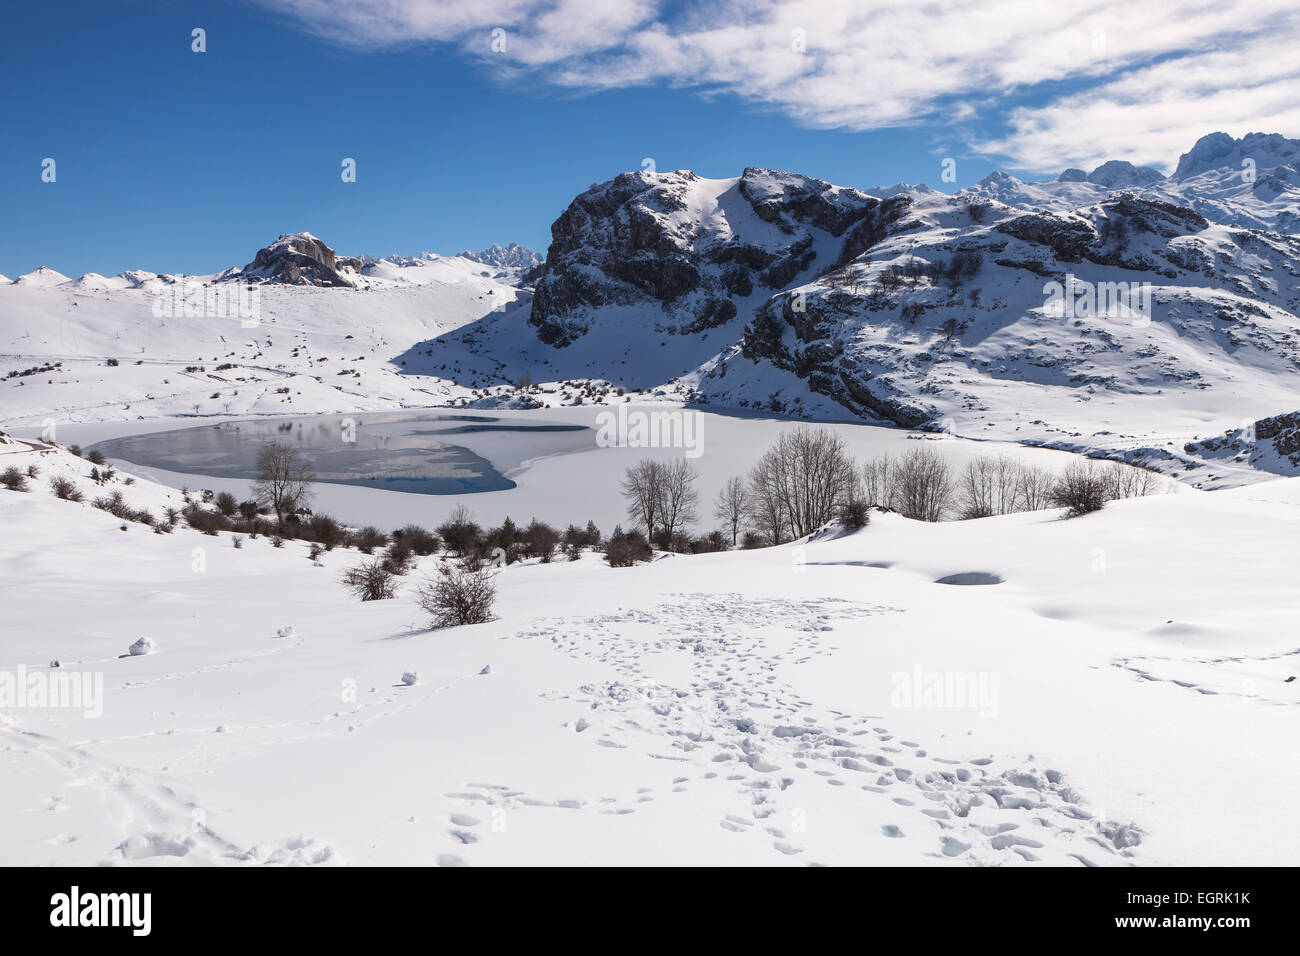 Semi frozen Enol Lake, in Covadonga, in the Picos de Europa National Park, Asturias, Spain. - Stock Image